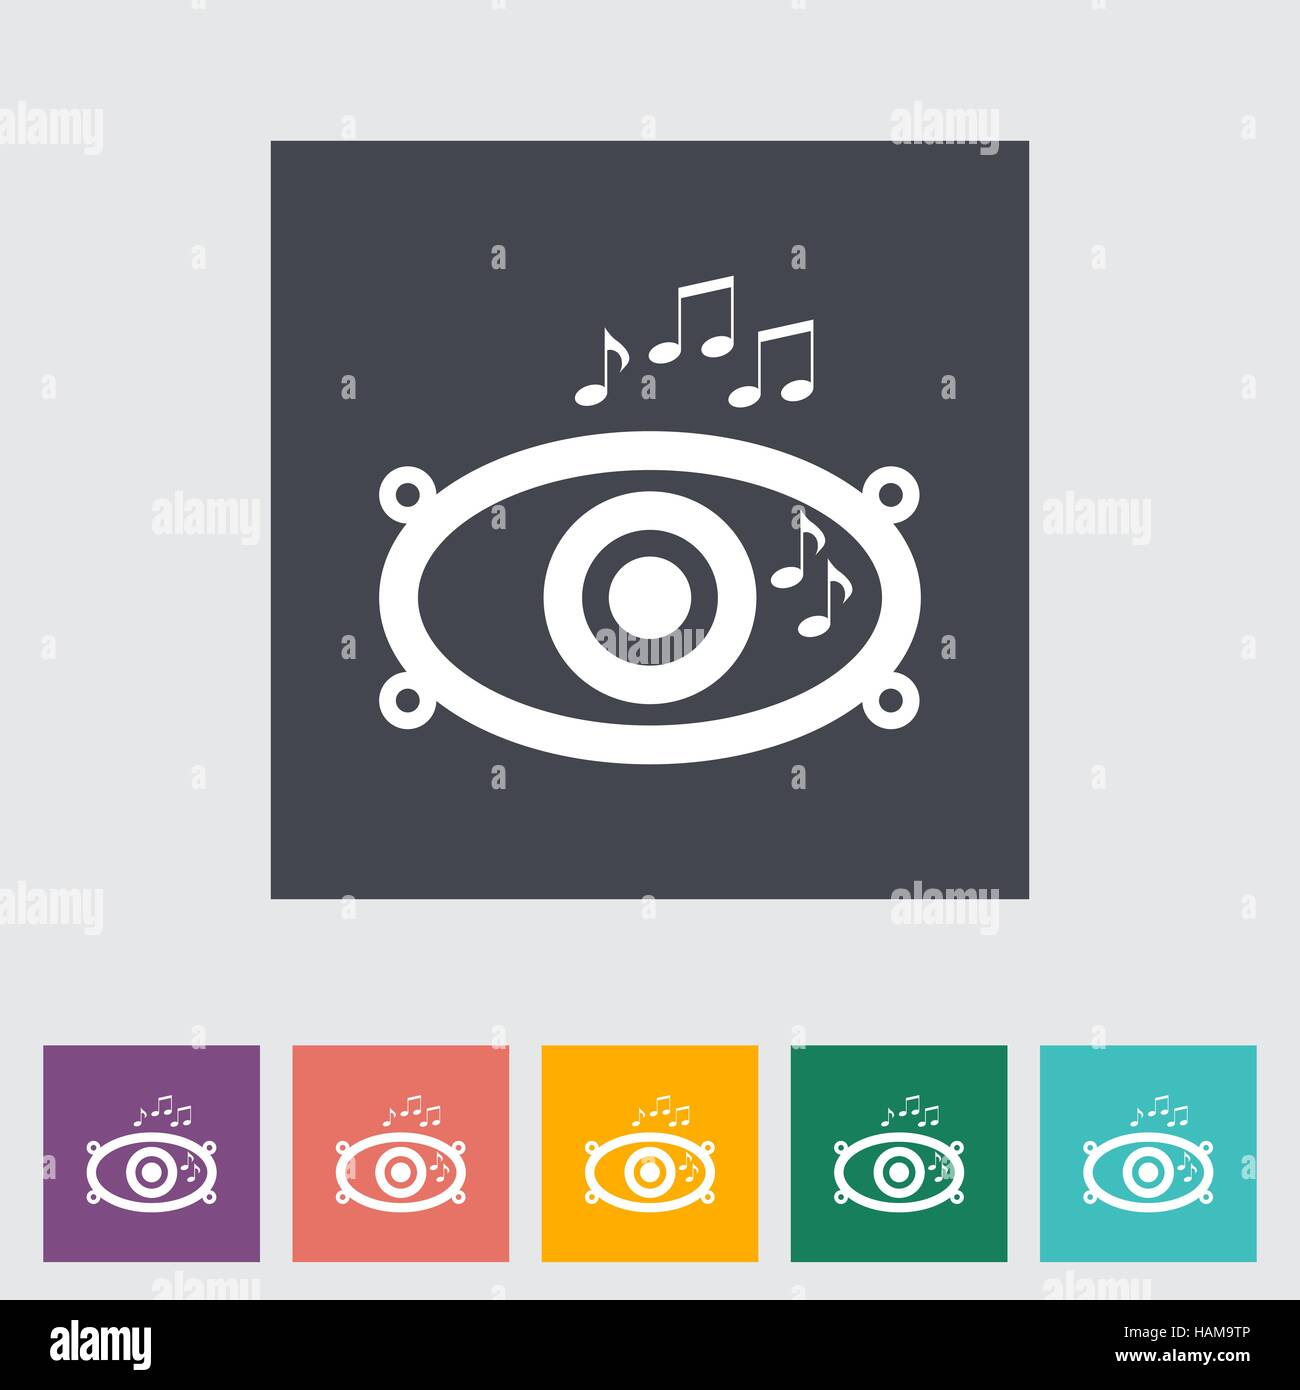 Icon of car speakers. Vector illustration. - Stock Image